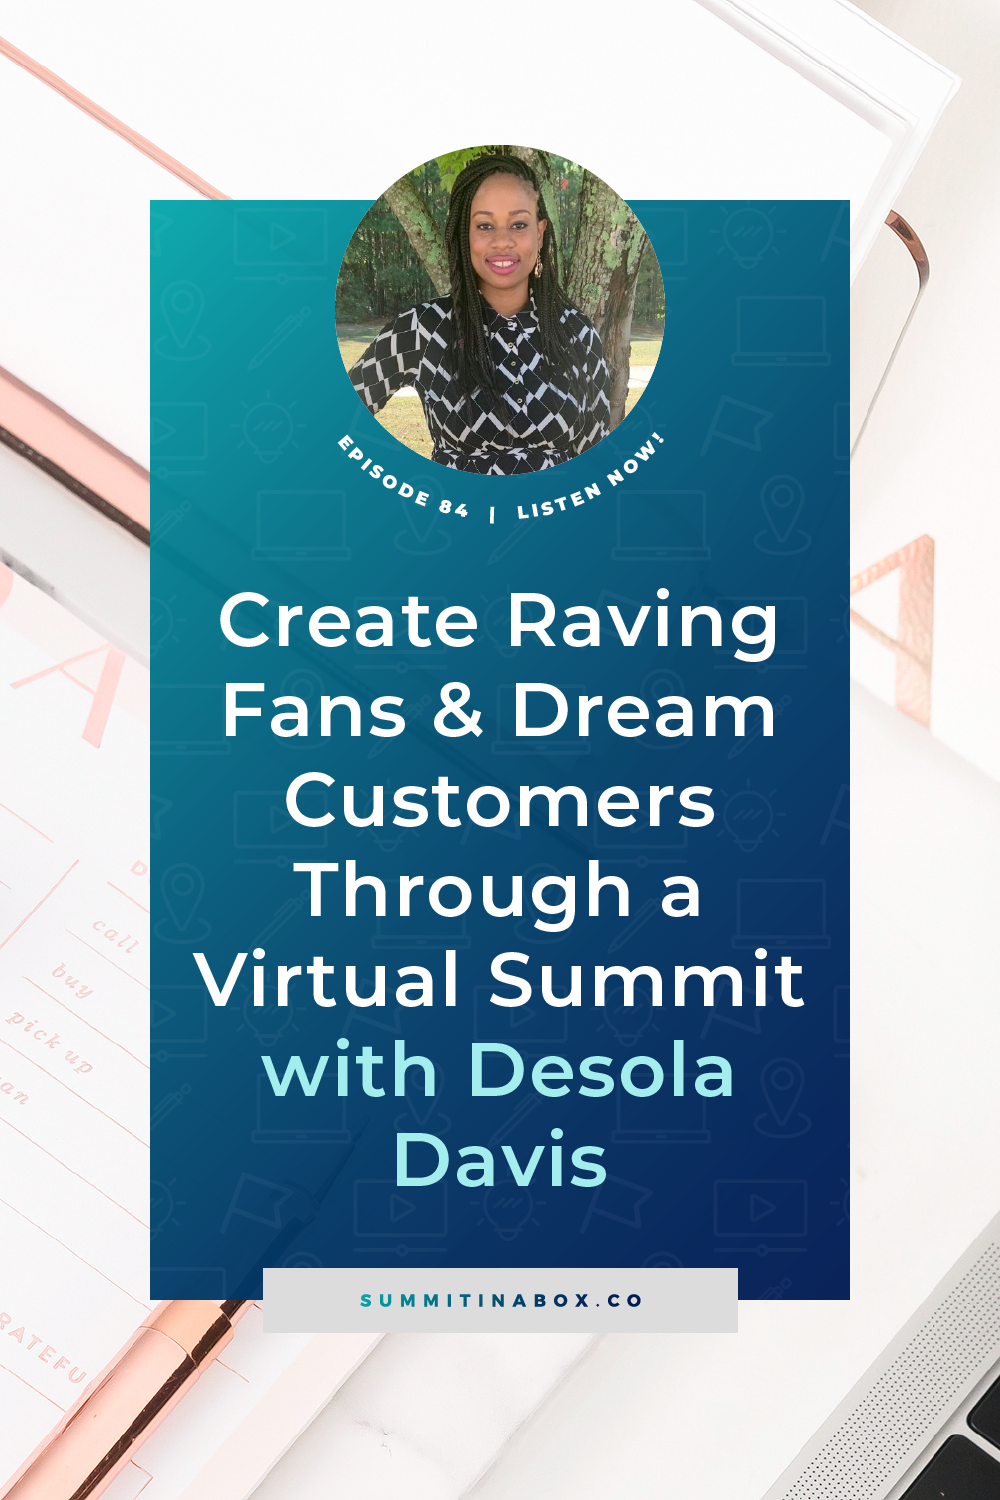 Virtual summits are powerful, but you can skyrocket their effectiveness by building in ways to create raving fans and dream customers throughout the process.